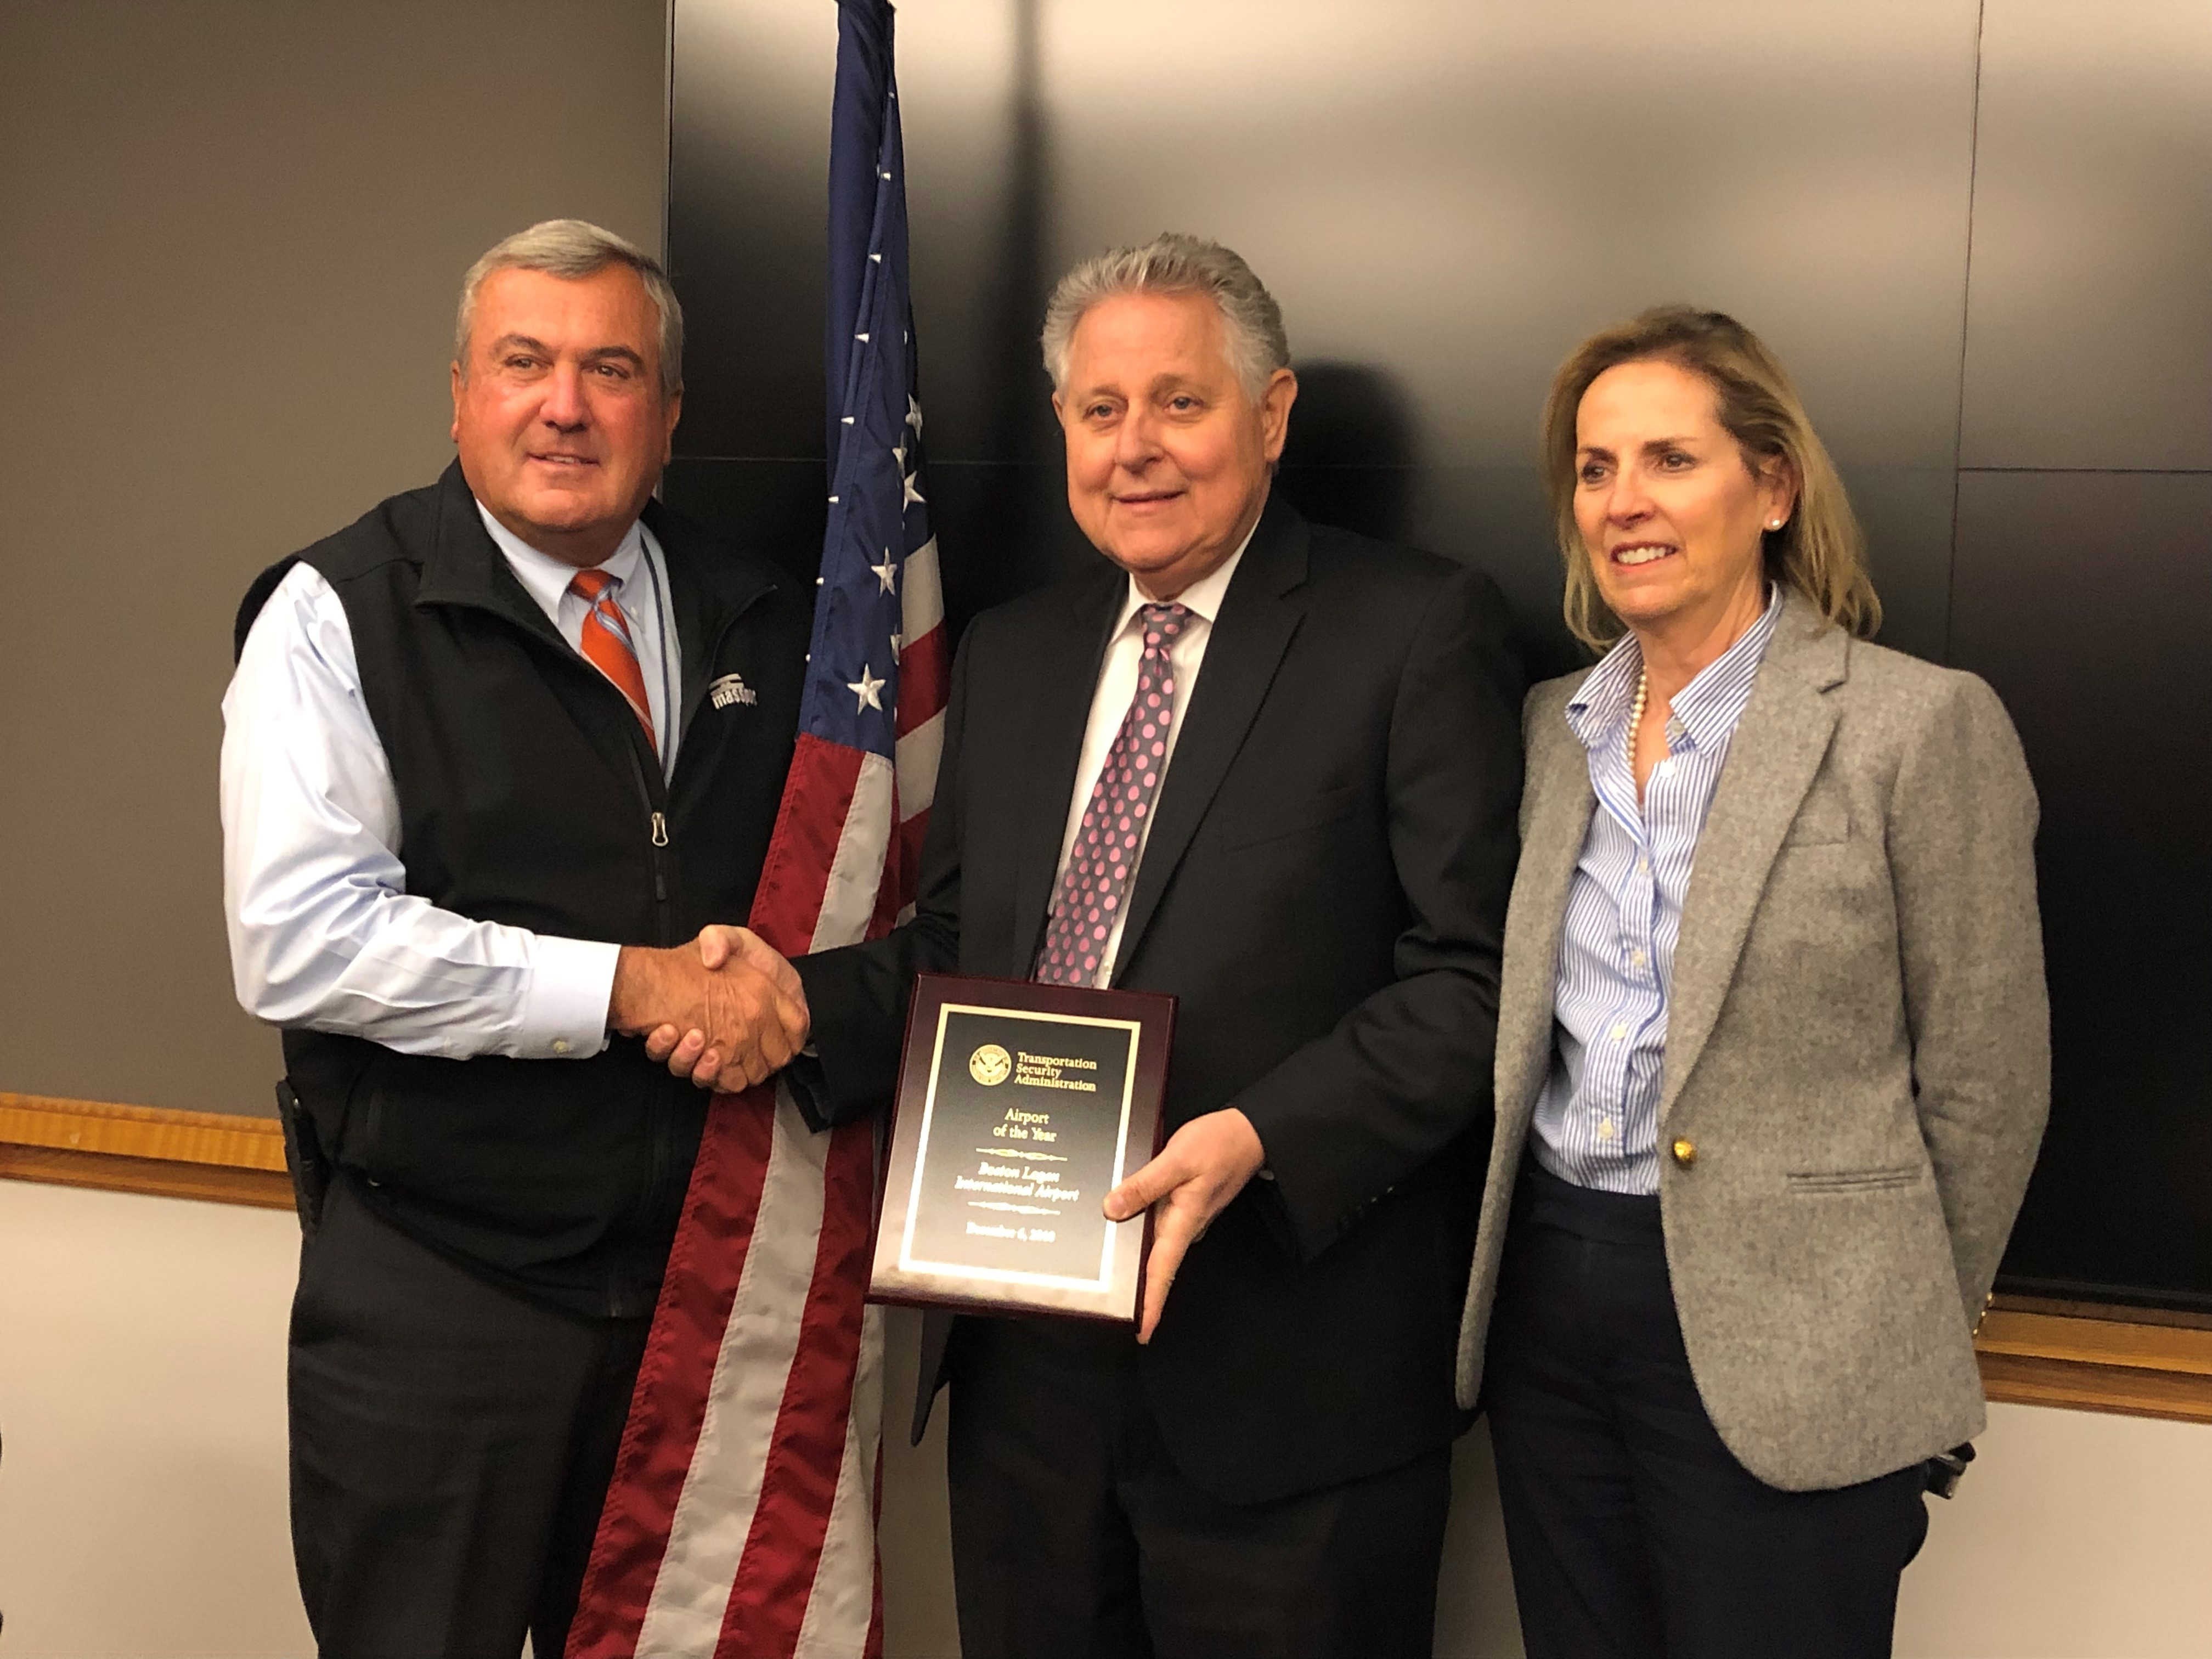 MassPort Aviation Director Ed Freni (left) congratulates TSA's Massachusetts Federal Security Director Bob Allison and TSA Deputy Federal Security Director Marcy Donnelly after Boston Logan International Airport was awarded TSA's 2018 Airport of the Year